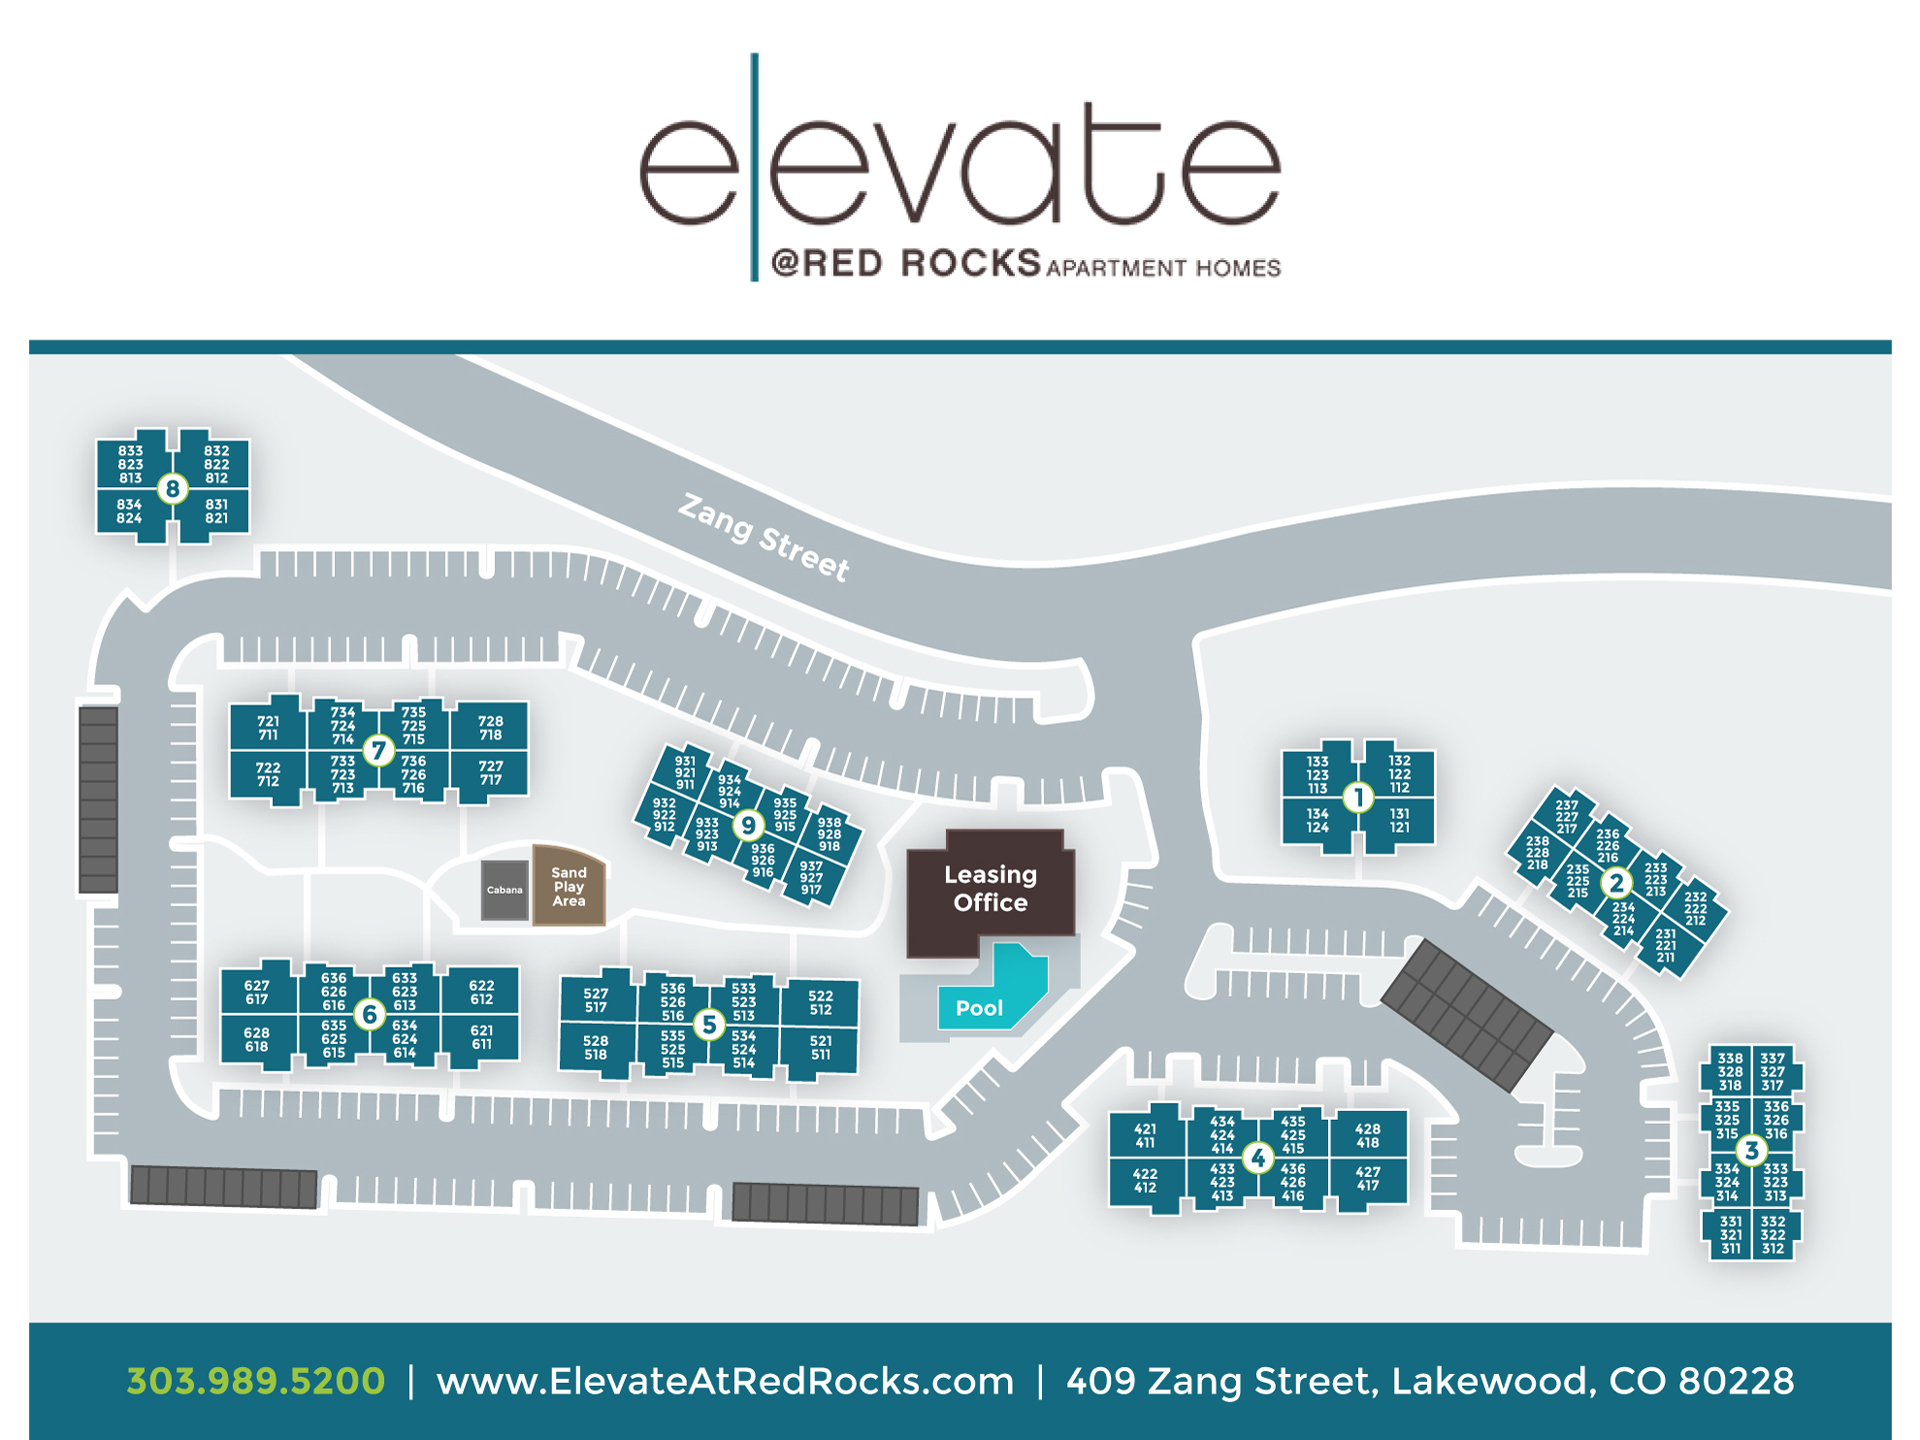 Clubhouse | Elevate at Red Rocks Apartments in Lakewood, CO